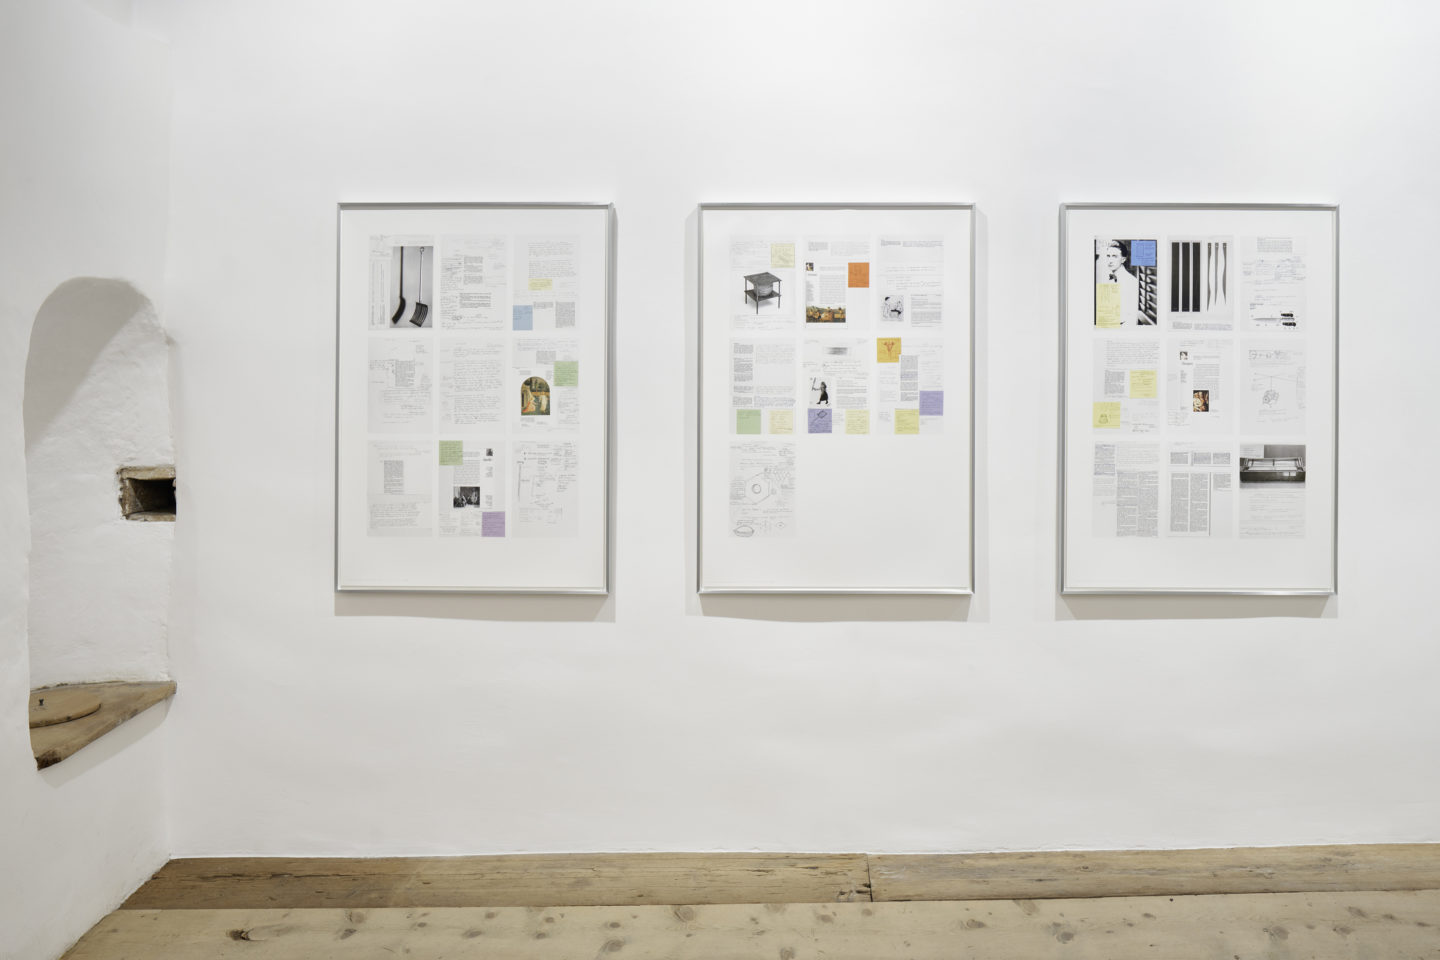 Installation View Bethan Huws «Soloshow / Research Notes 2007-2014, 2016» at Galerie Tschudi, Zuoz / Photo: Ralph Feiner / Courtesy: the artist and Galerie Tschudi, Zuoz